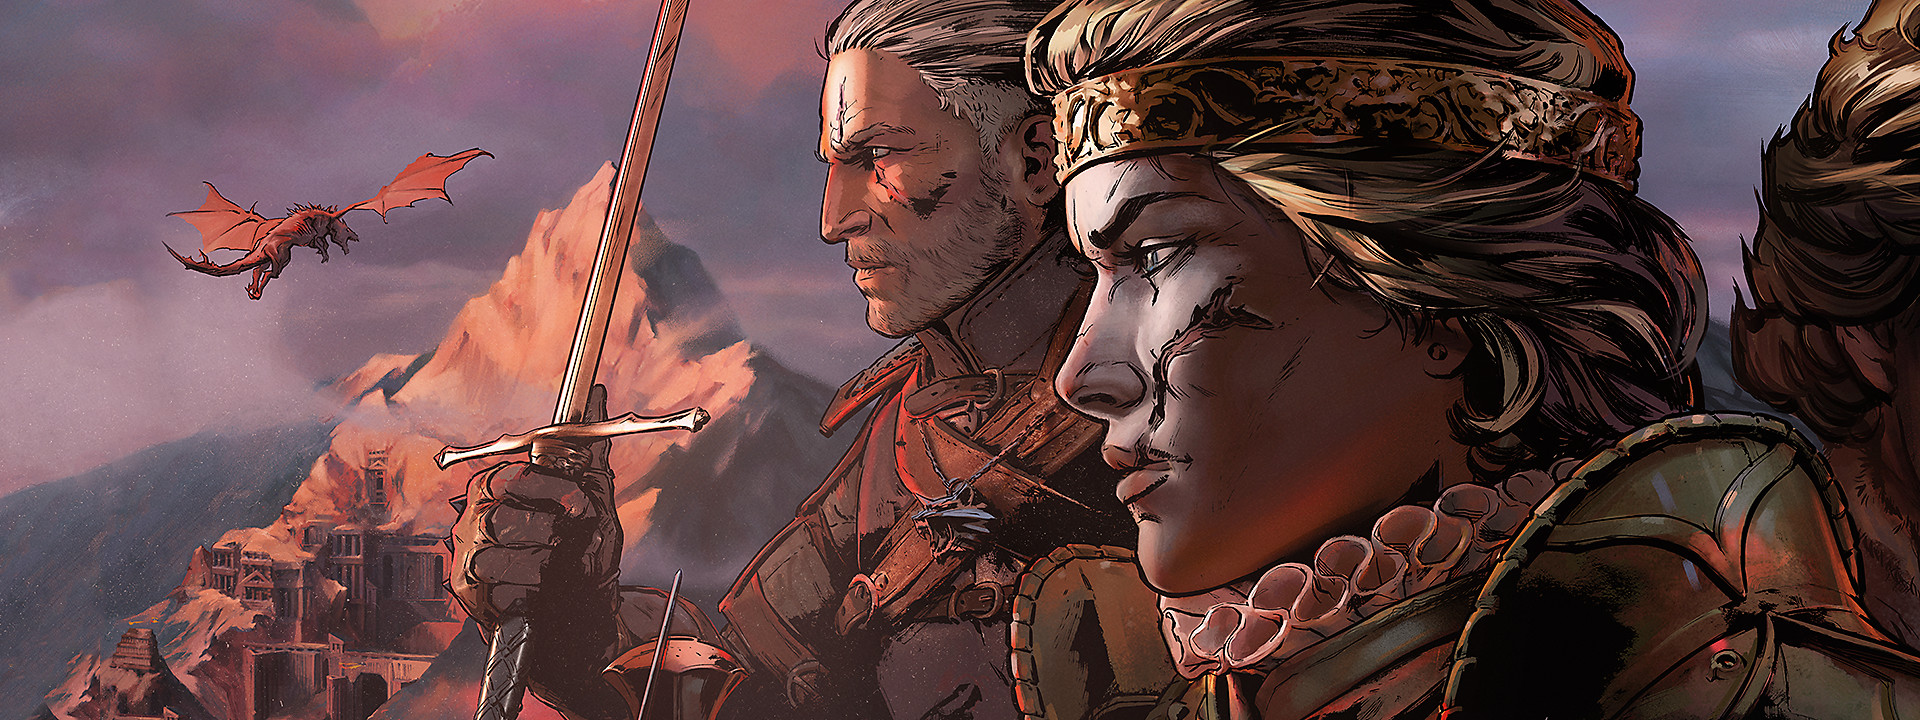 Banner del juego Thronebreaker: The Witcher Tales